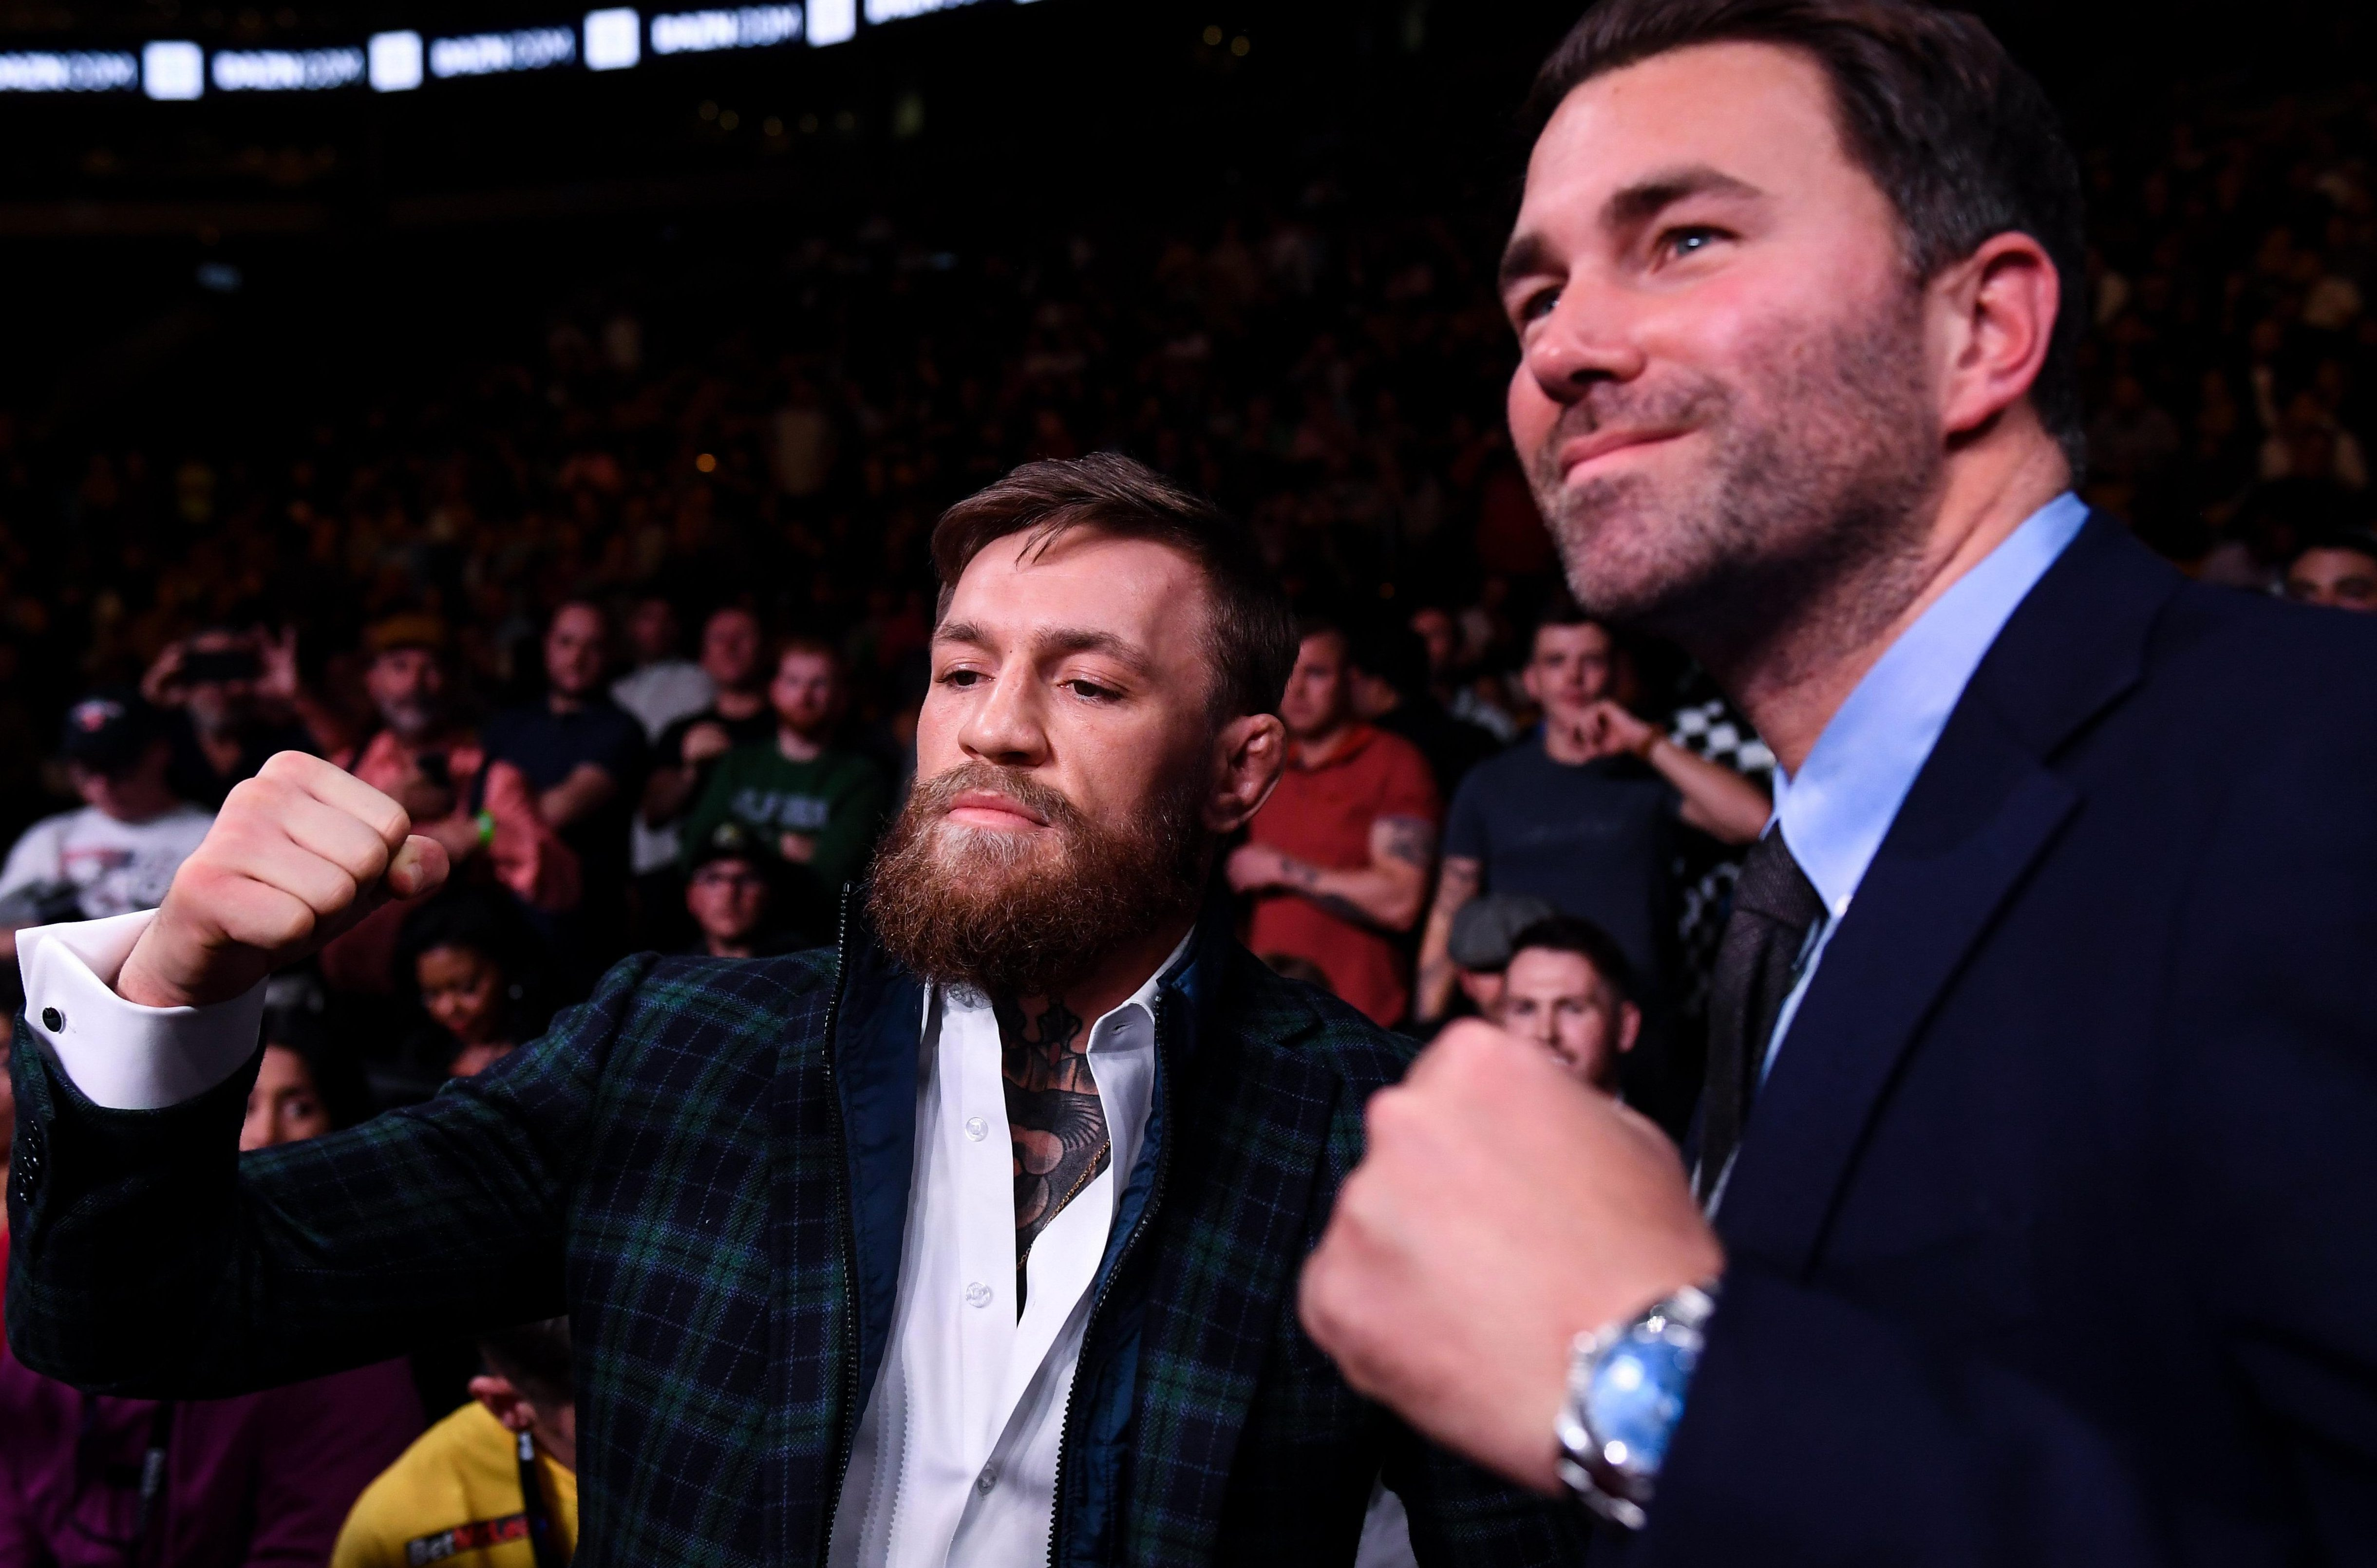 Eddie Hearn, pictured at the weekend alongside UFC legend Conor McGregor, has blasted Deontay Wilder, accusing him of trying to jump on the Joshua bandwagon